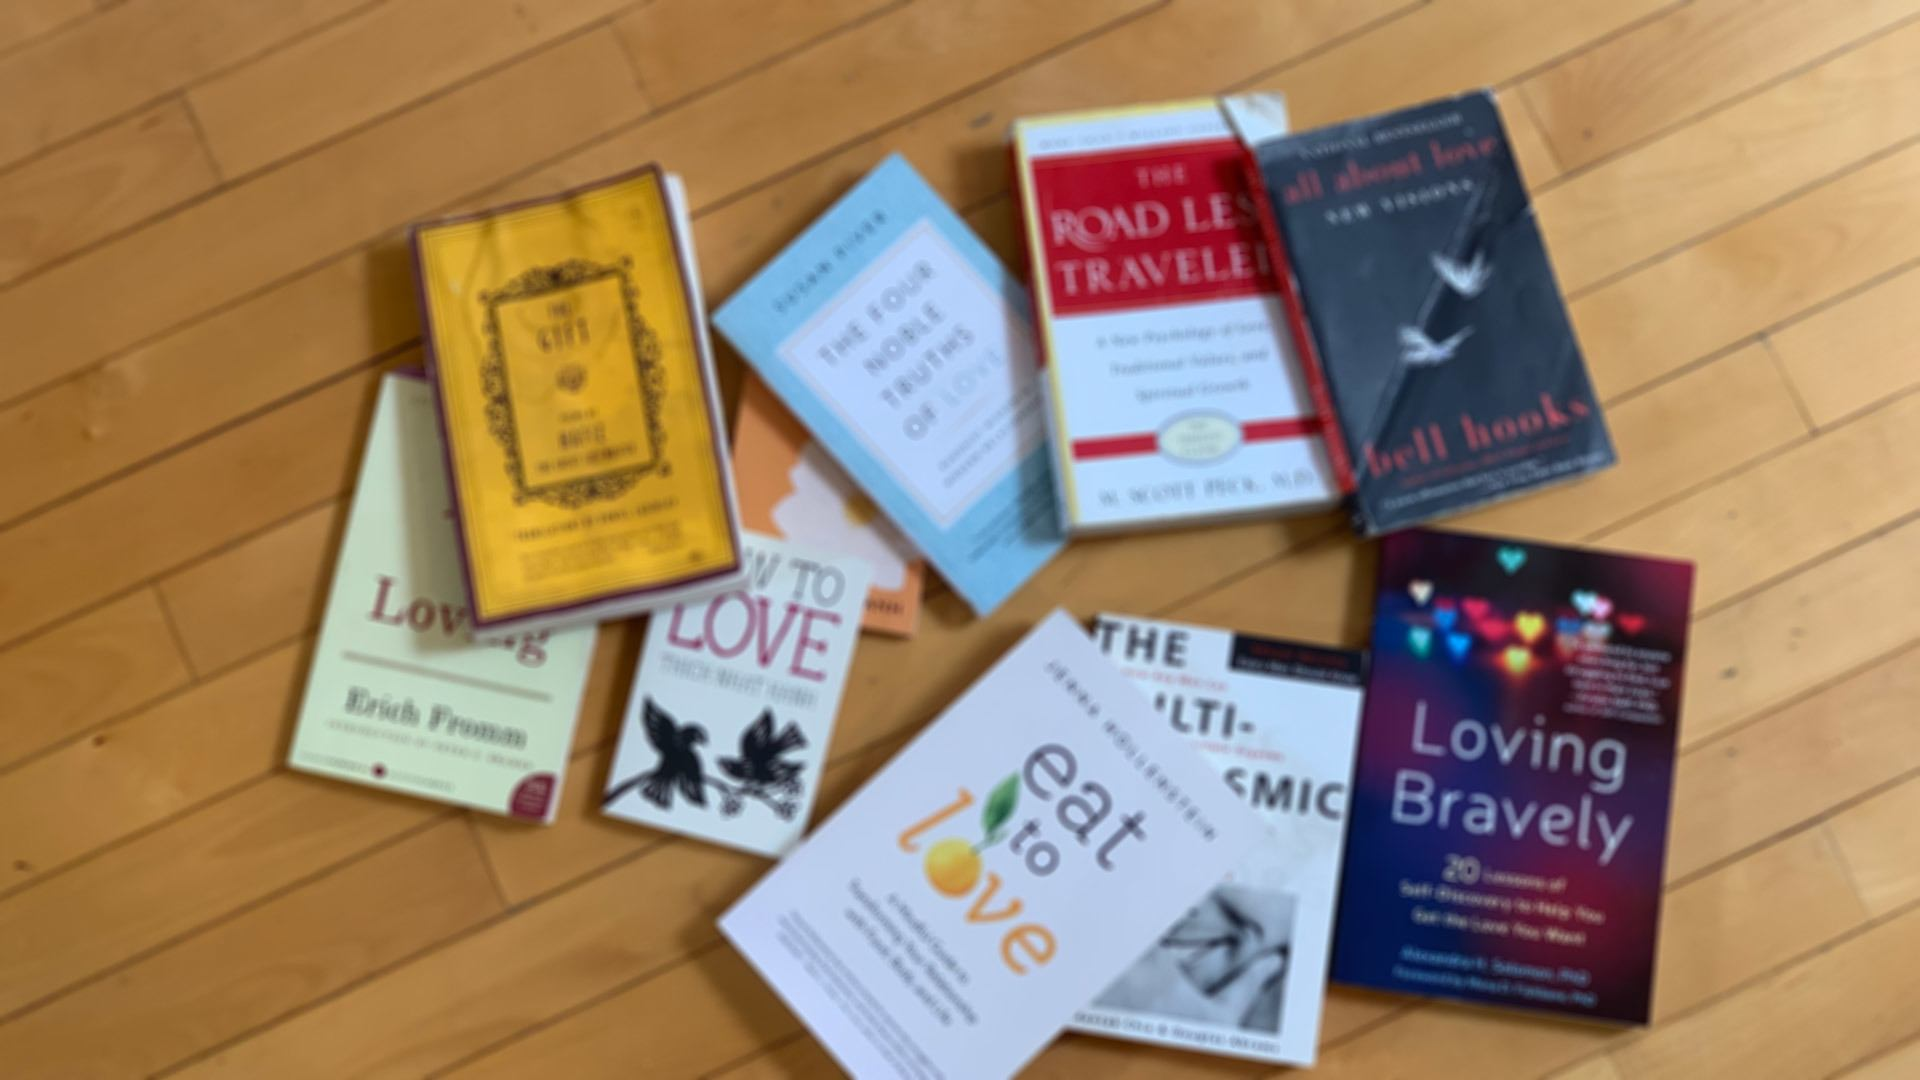 The Love Drive Book List